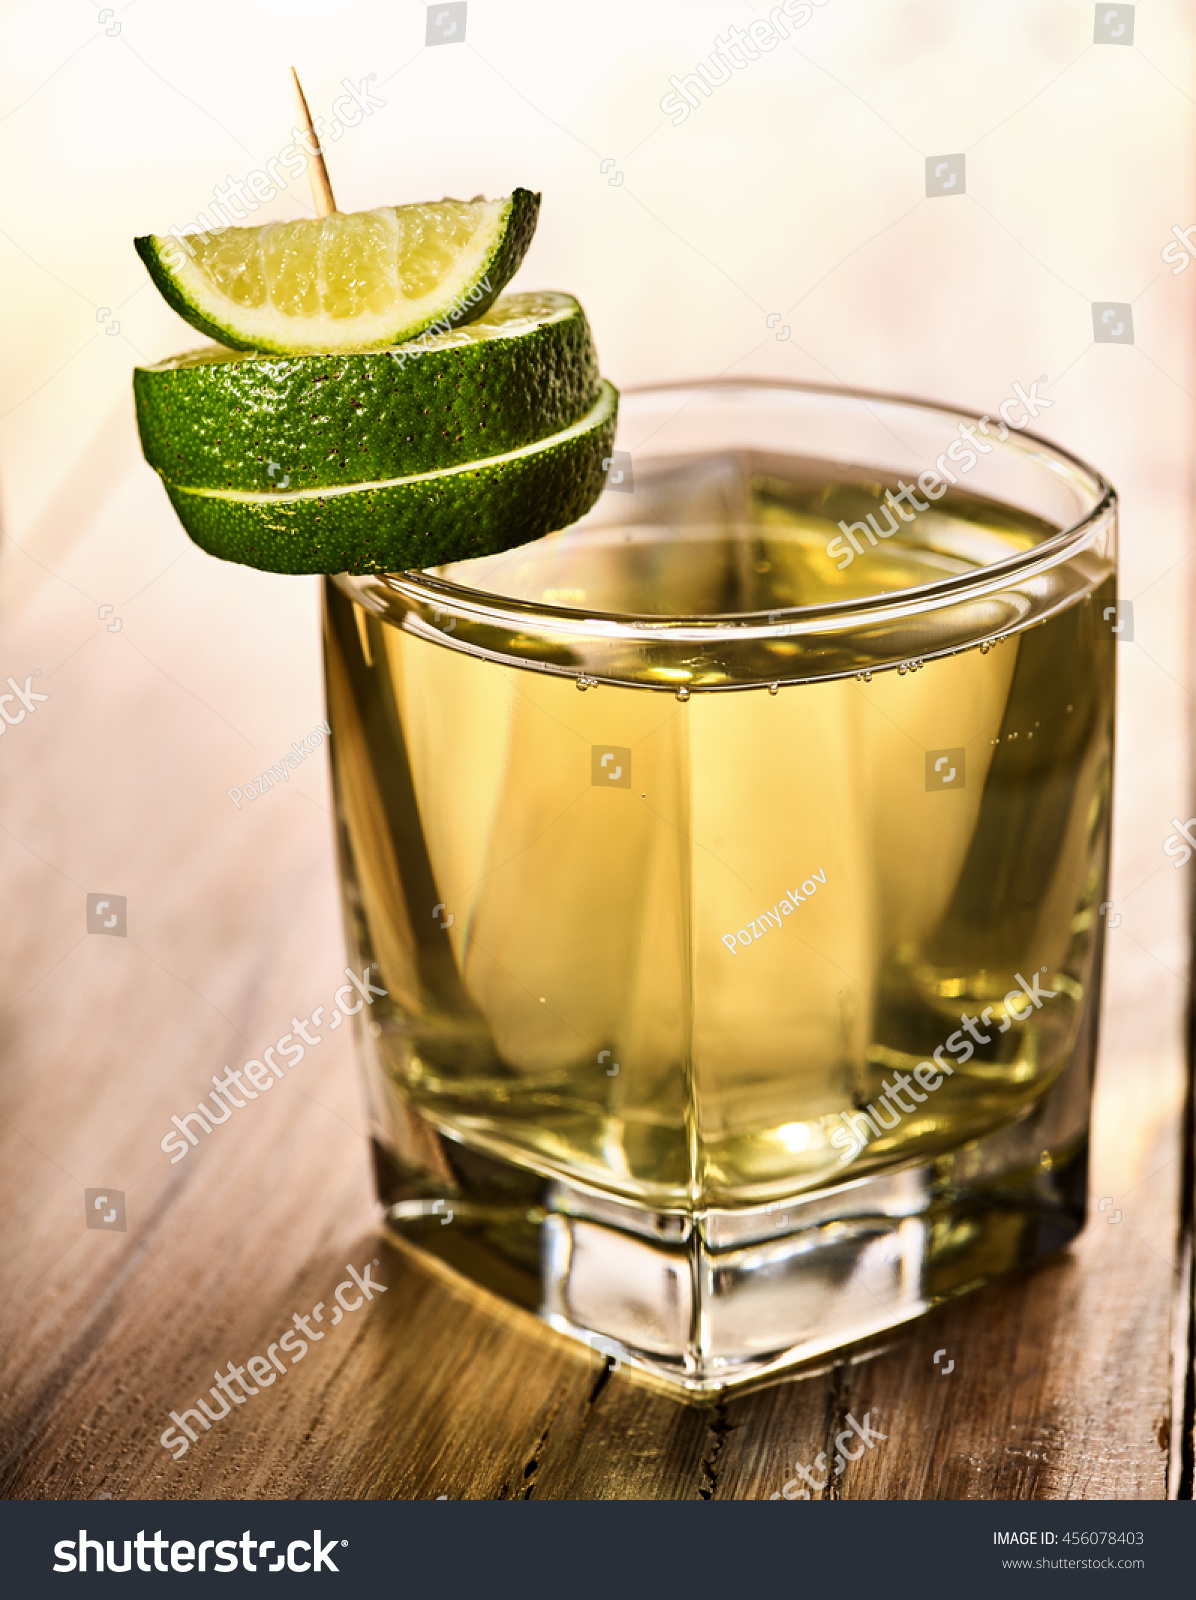 Alcohol cocktail on wooden boards glass stock photo for Mixed drinks with green tea